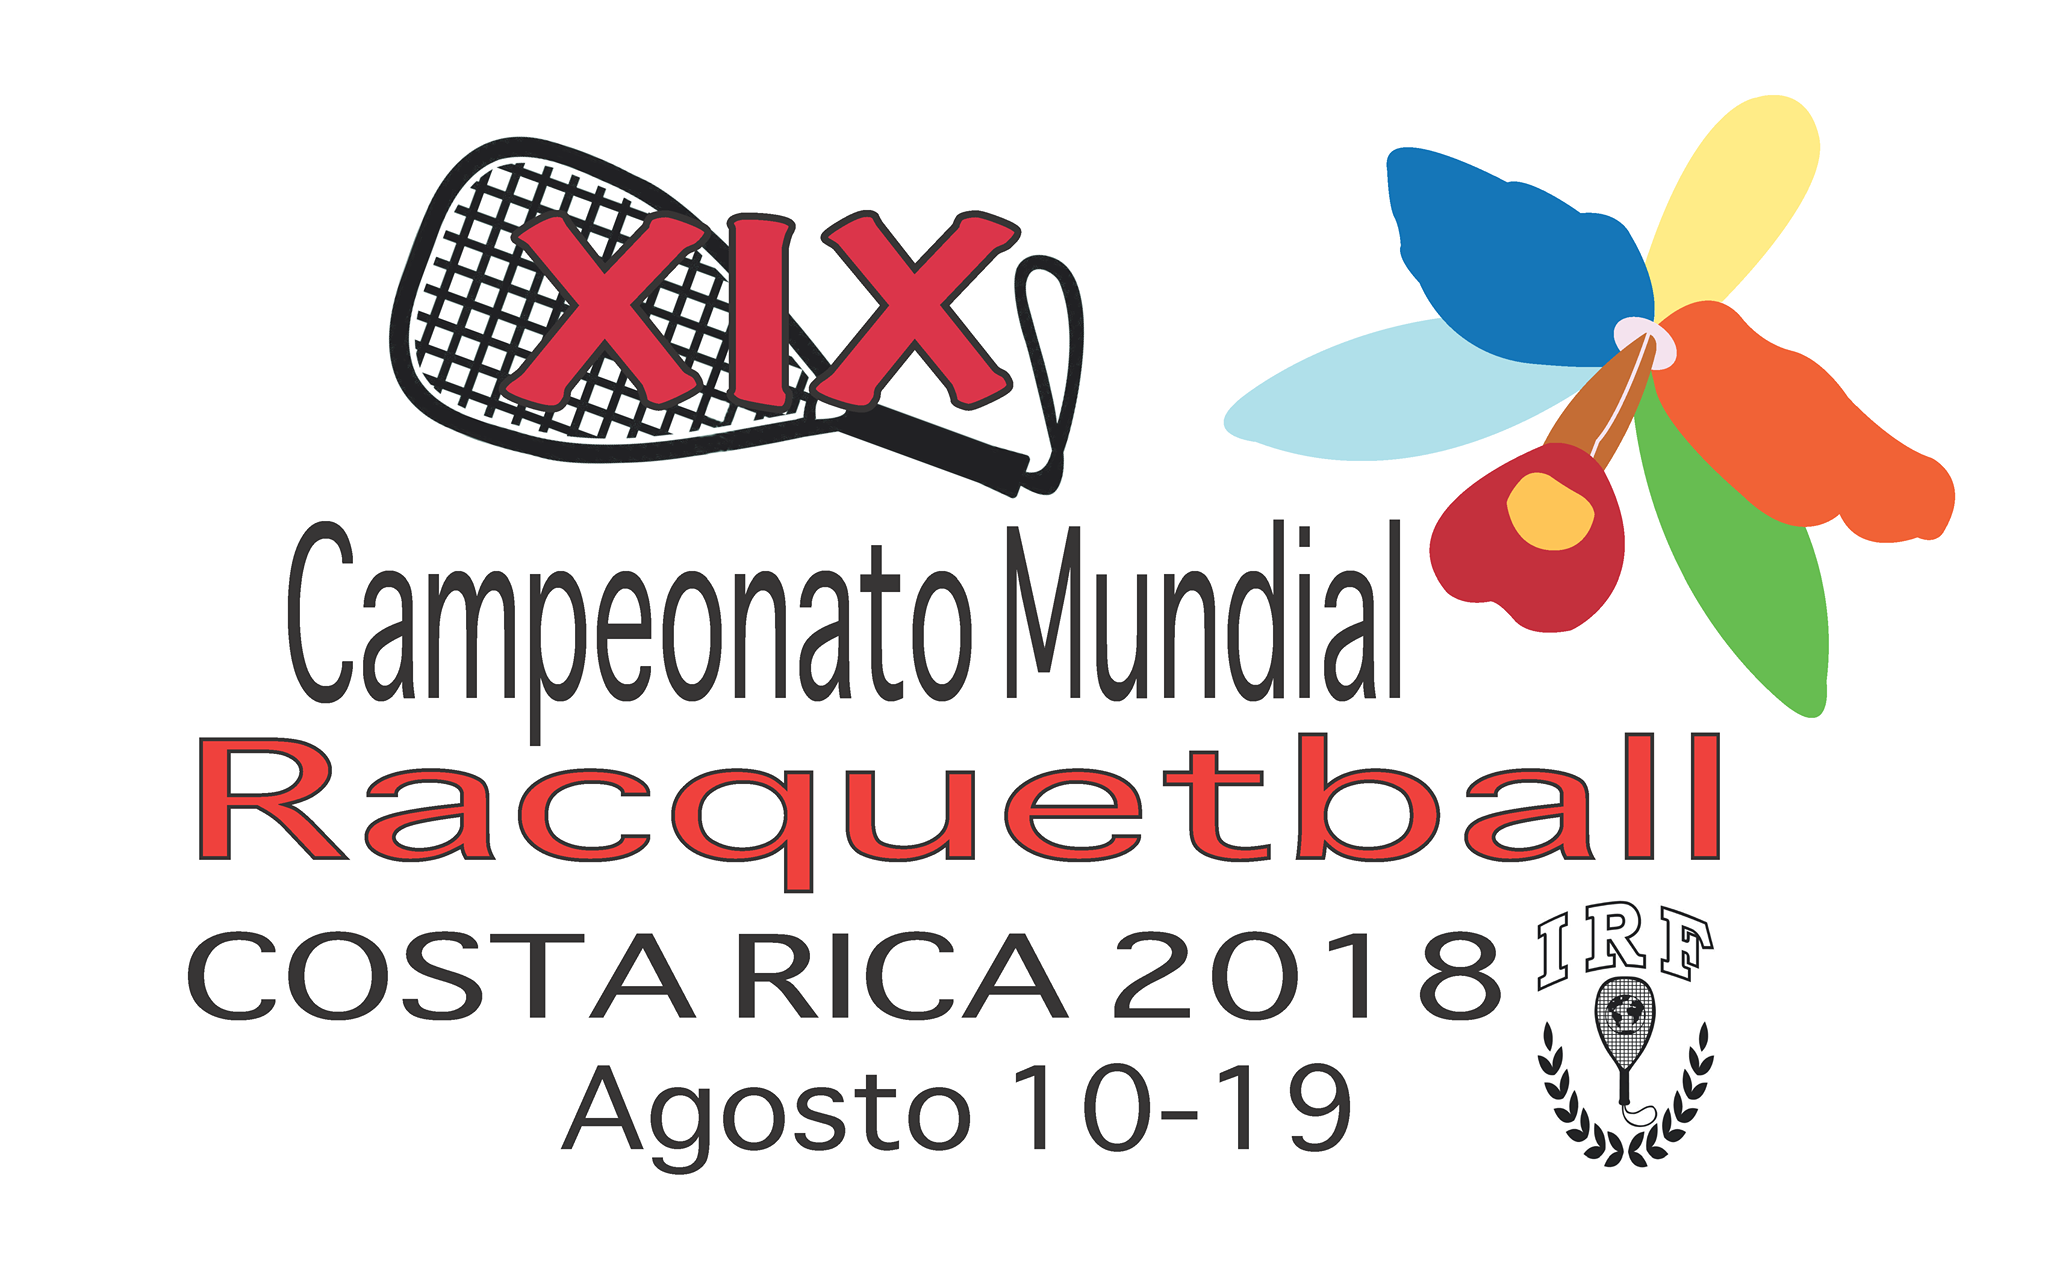 Costa Rica 2018 World Racquetball Championship